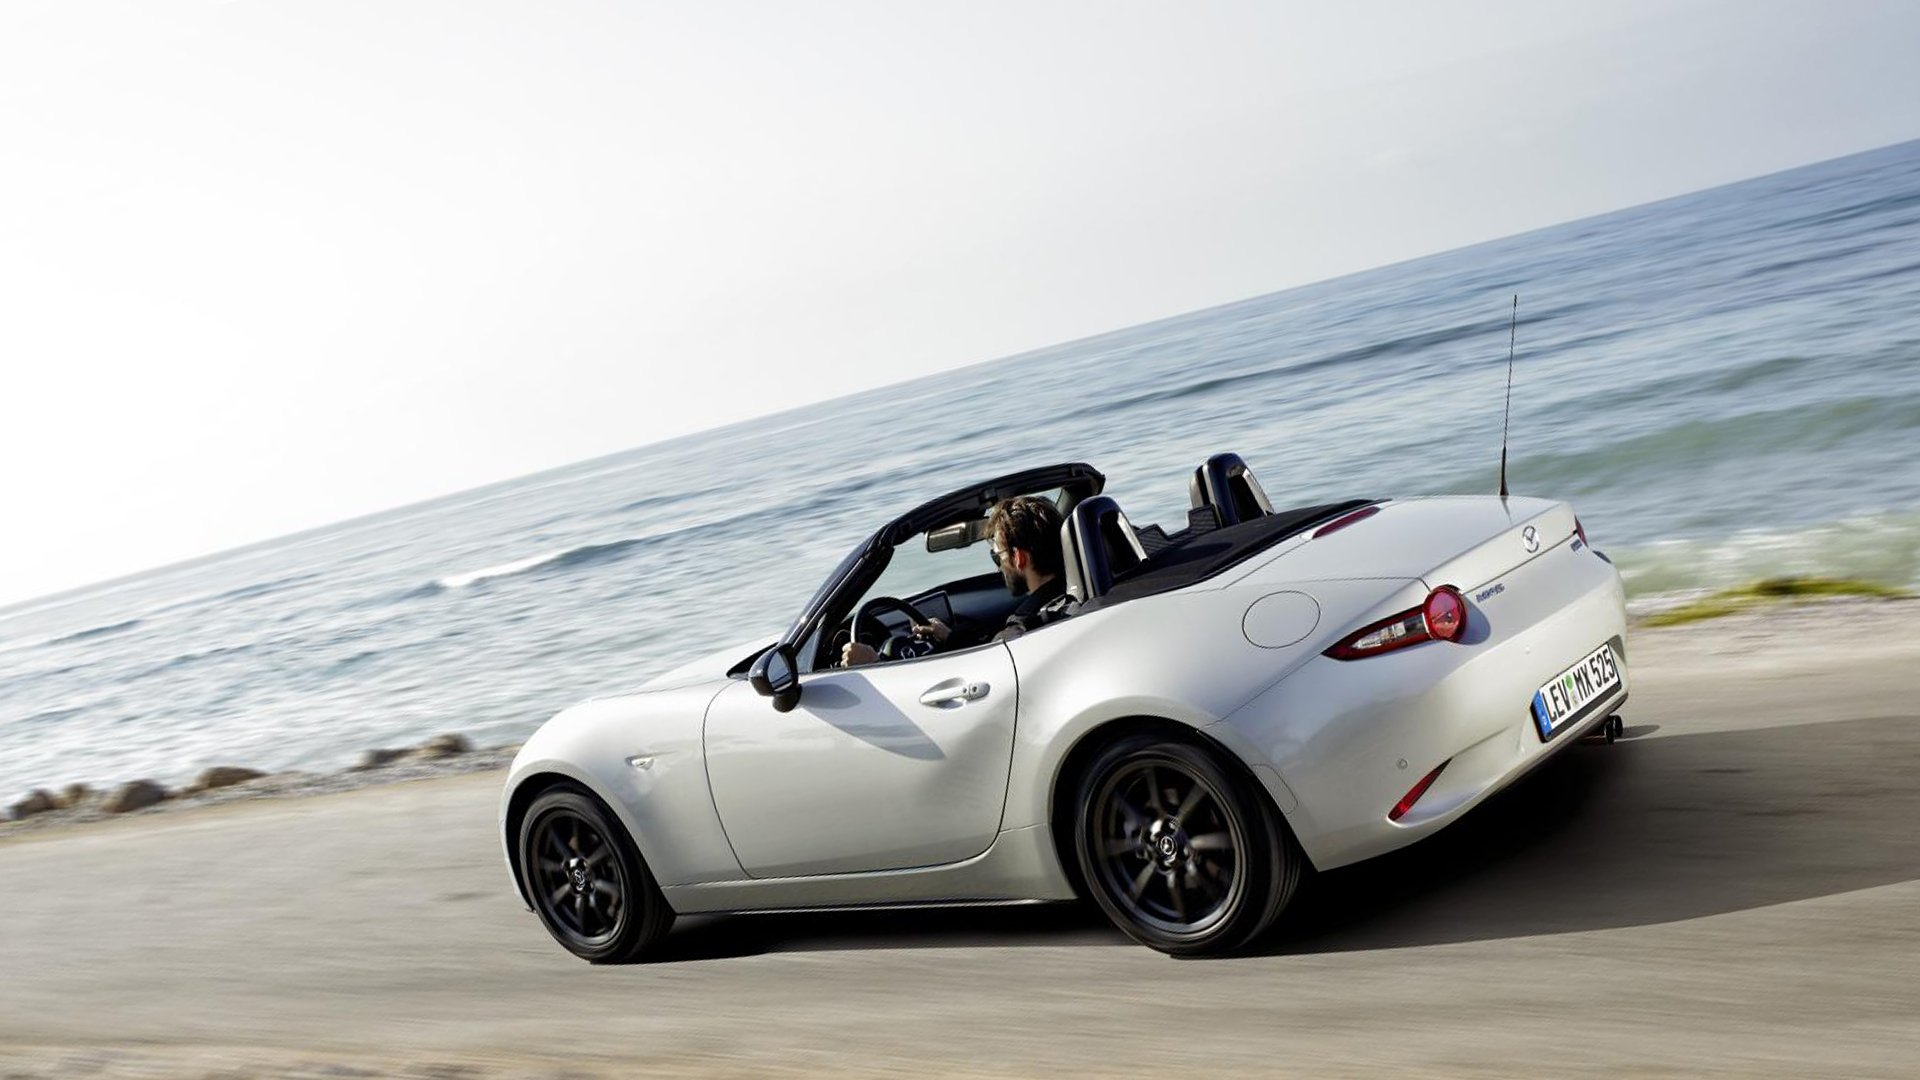 Sport Car Mazda MX-5 New HD